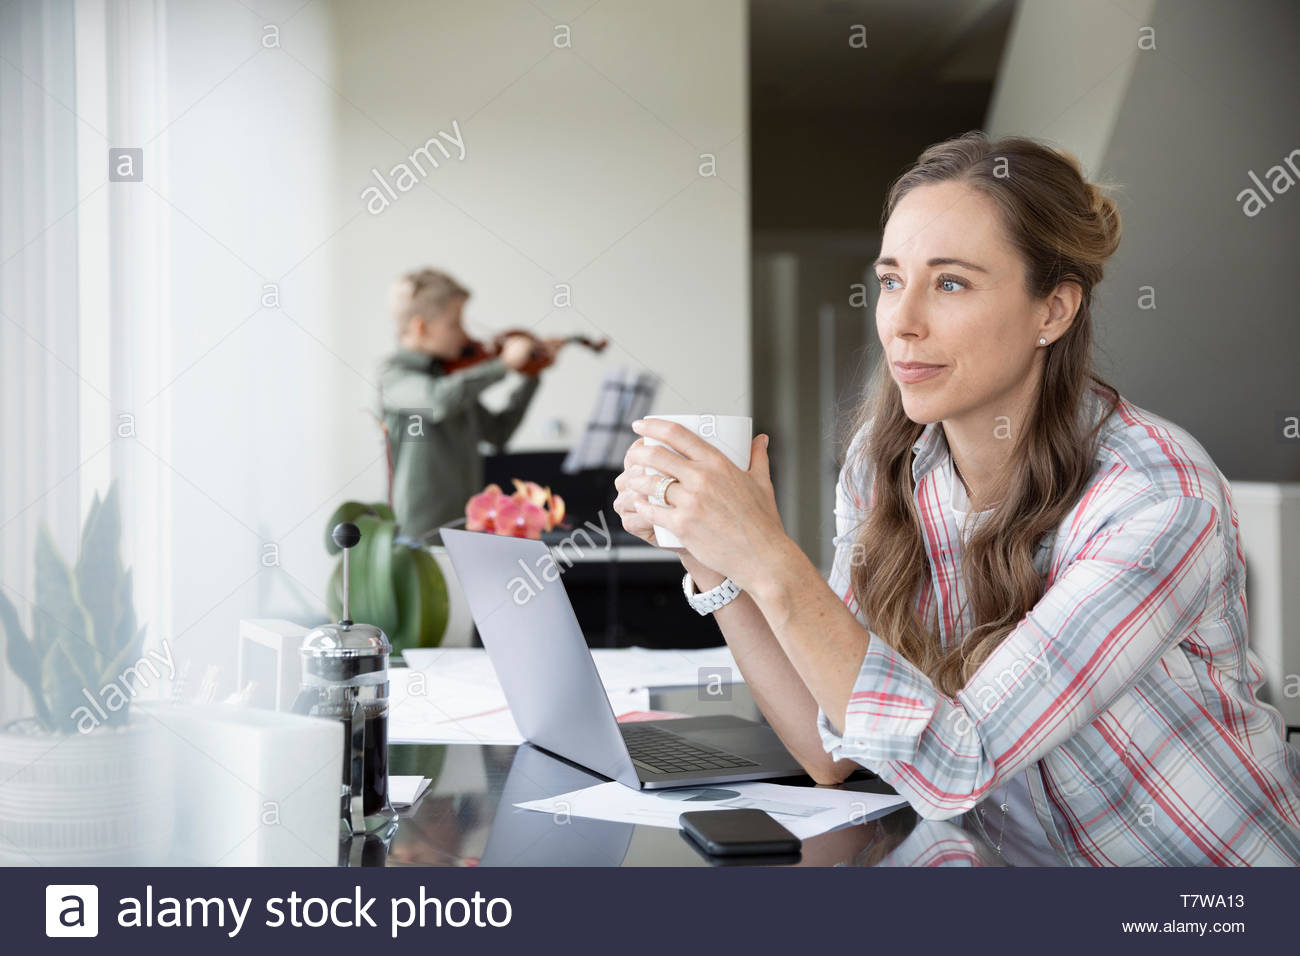 Thoughtful woman drinking coffee, working from home while son practices violin in background - Stock Image